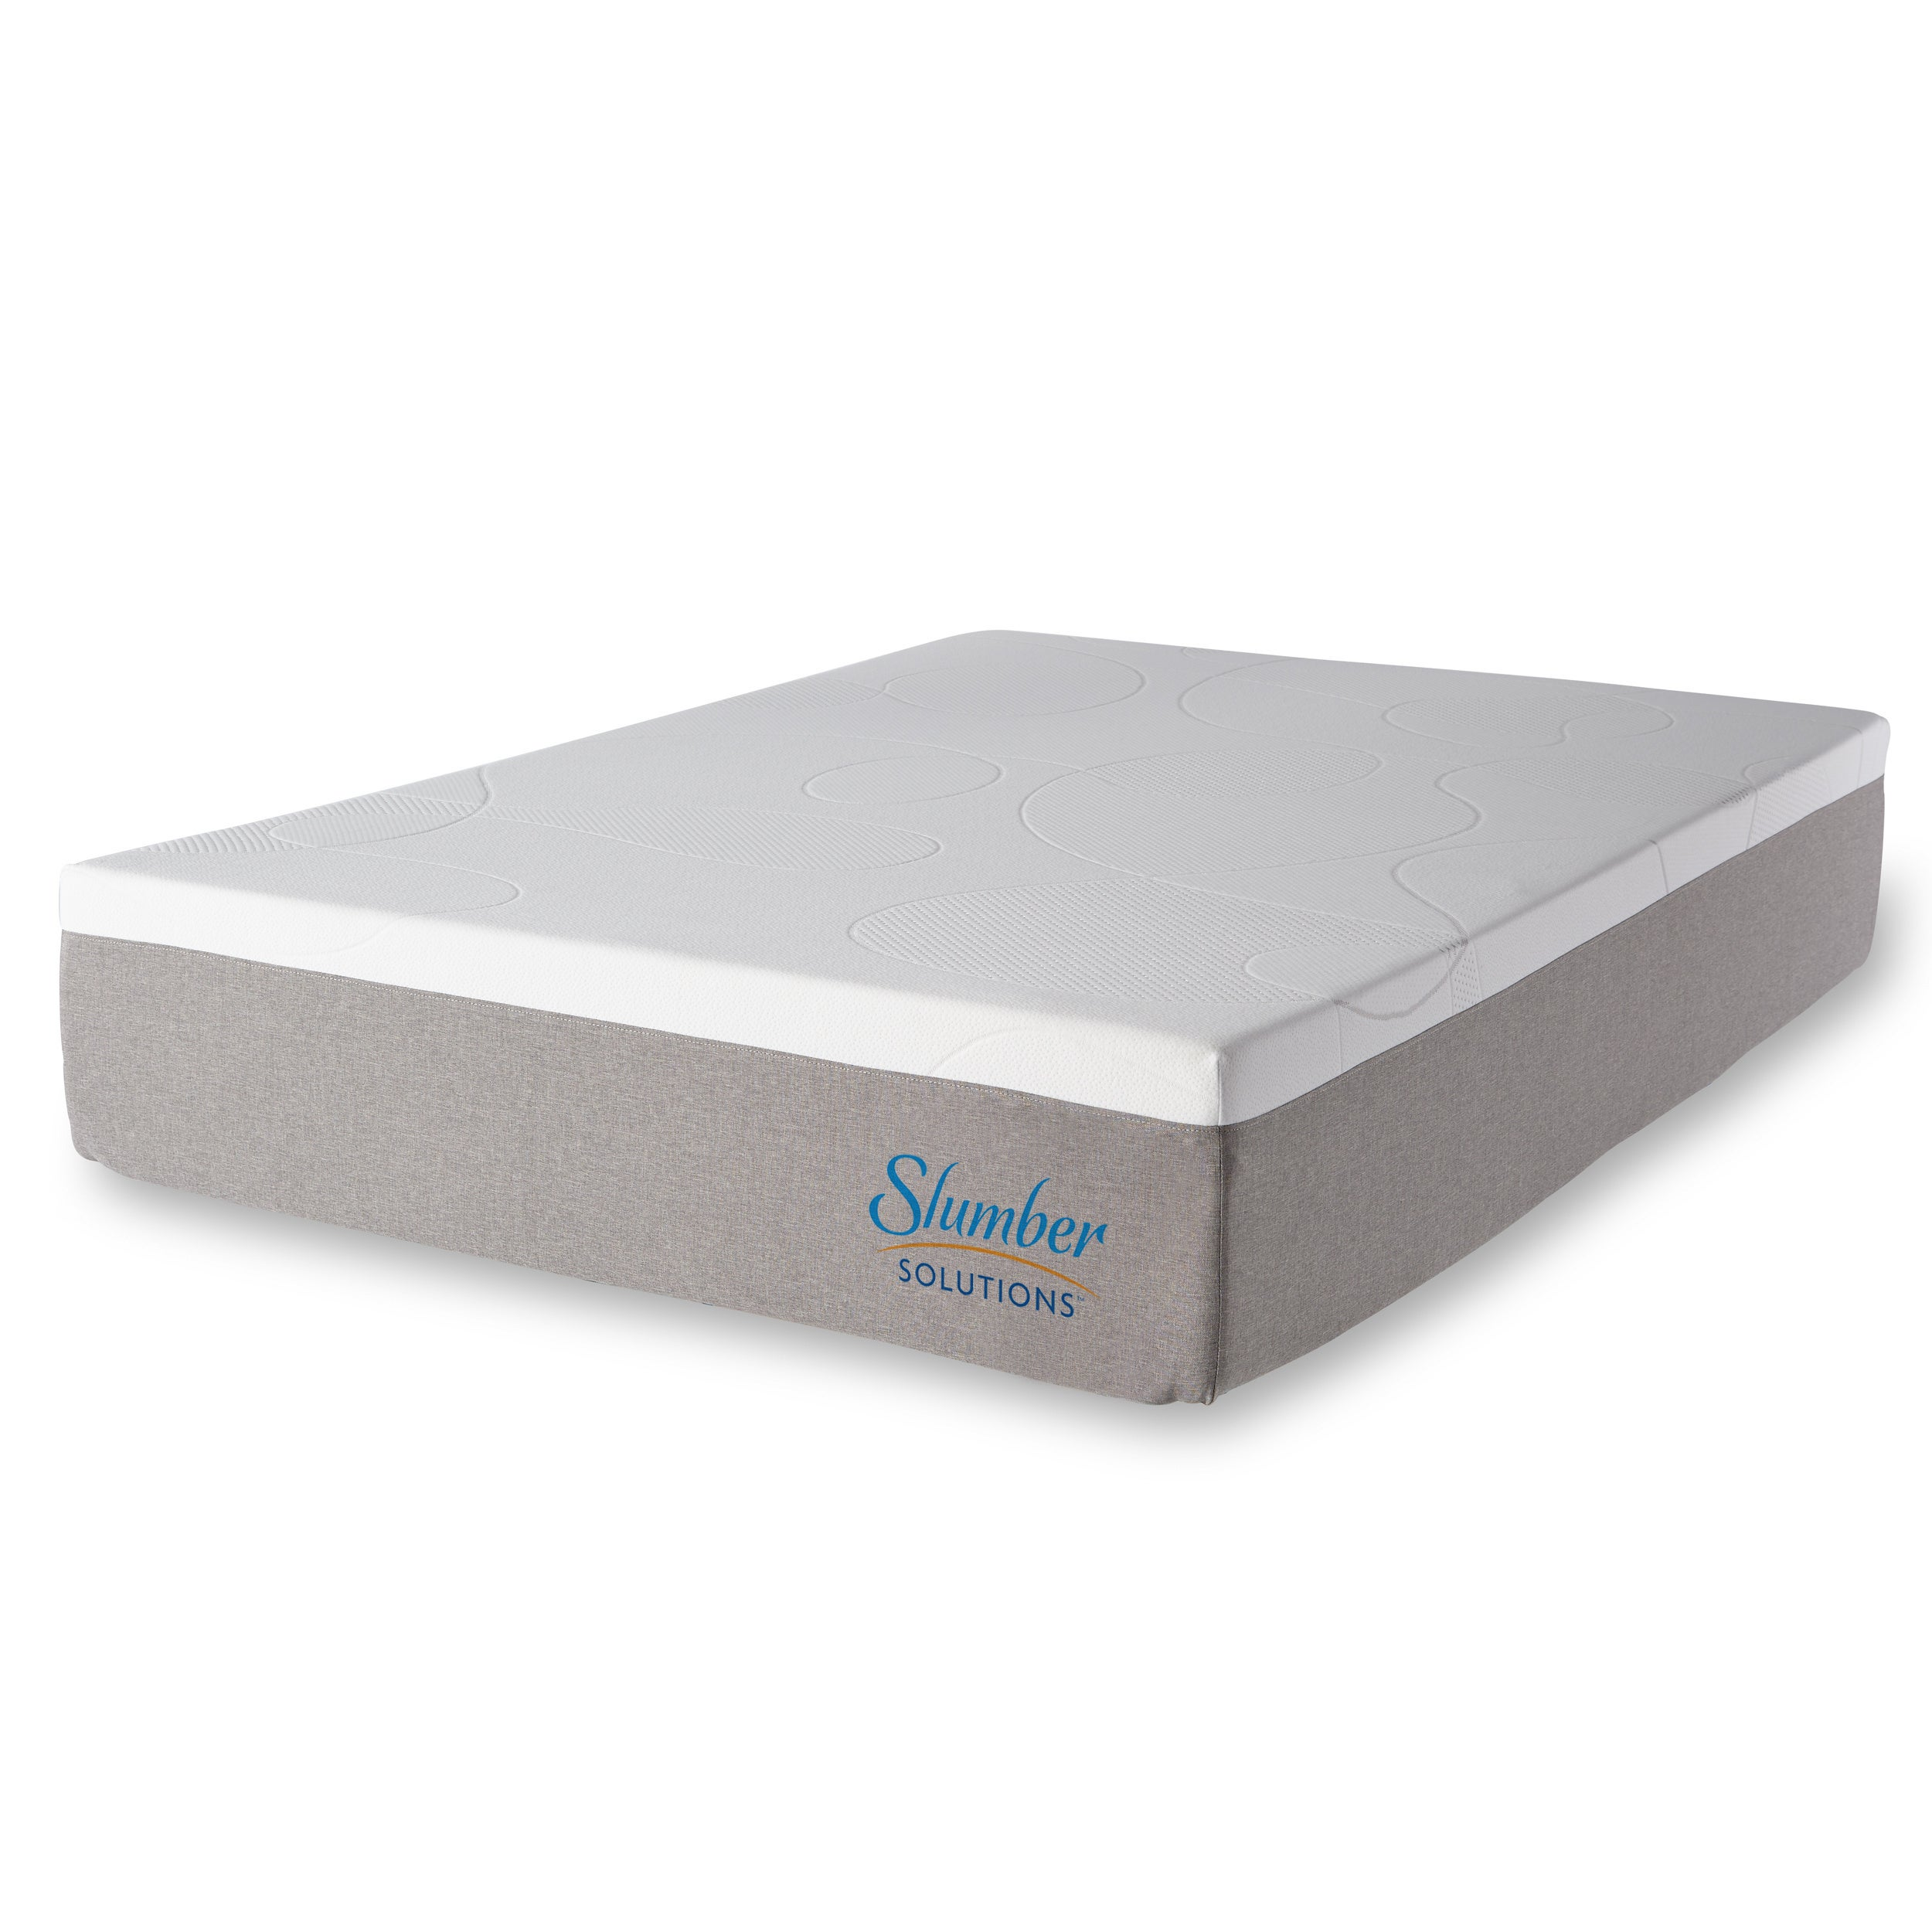 Slumber Solutions Choose Your Comfort 14 Inch Full Size Gel Memoryfoam Mattress Free Shipping Today 15869799